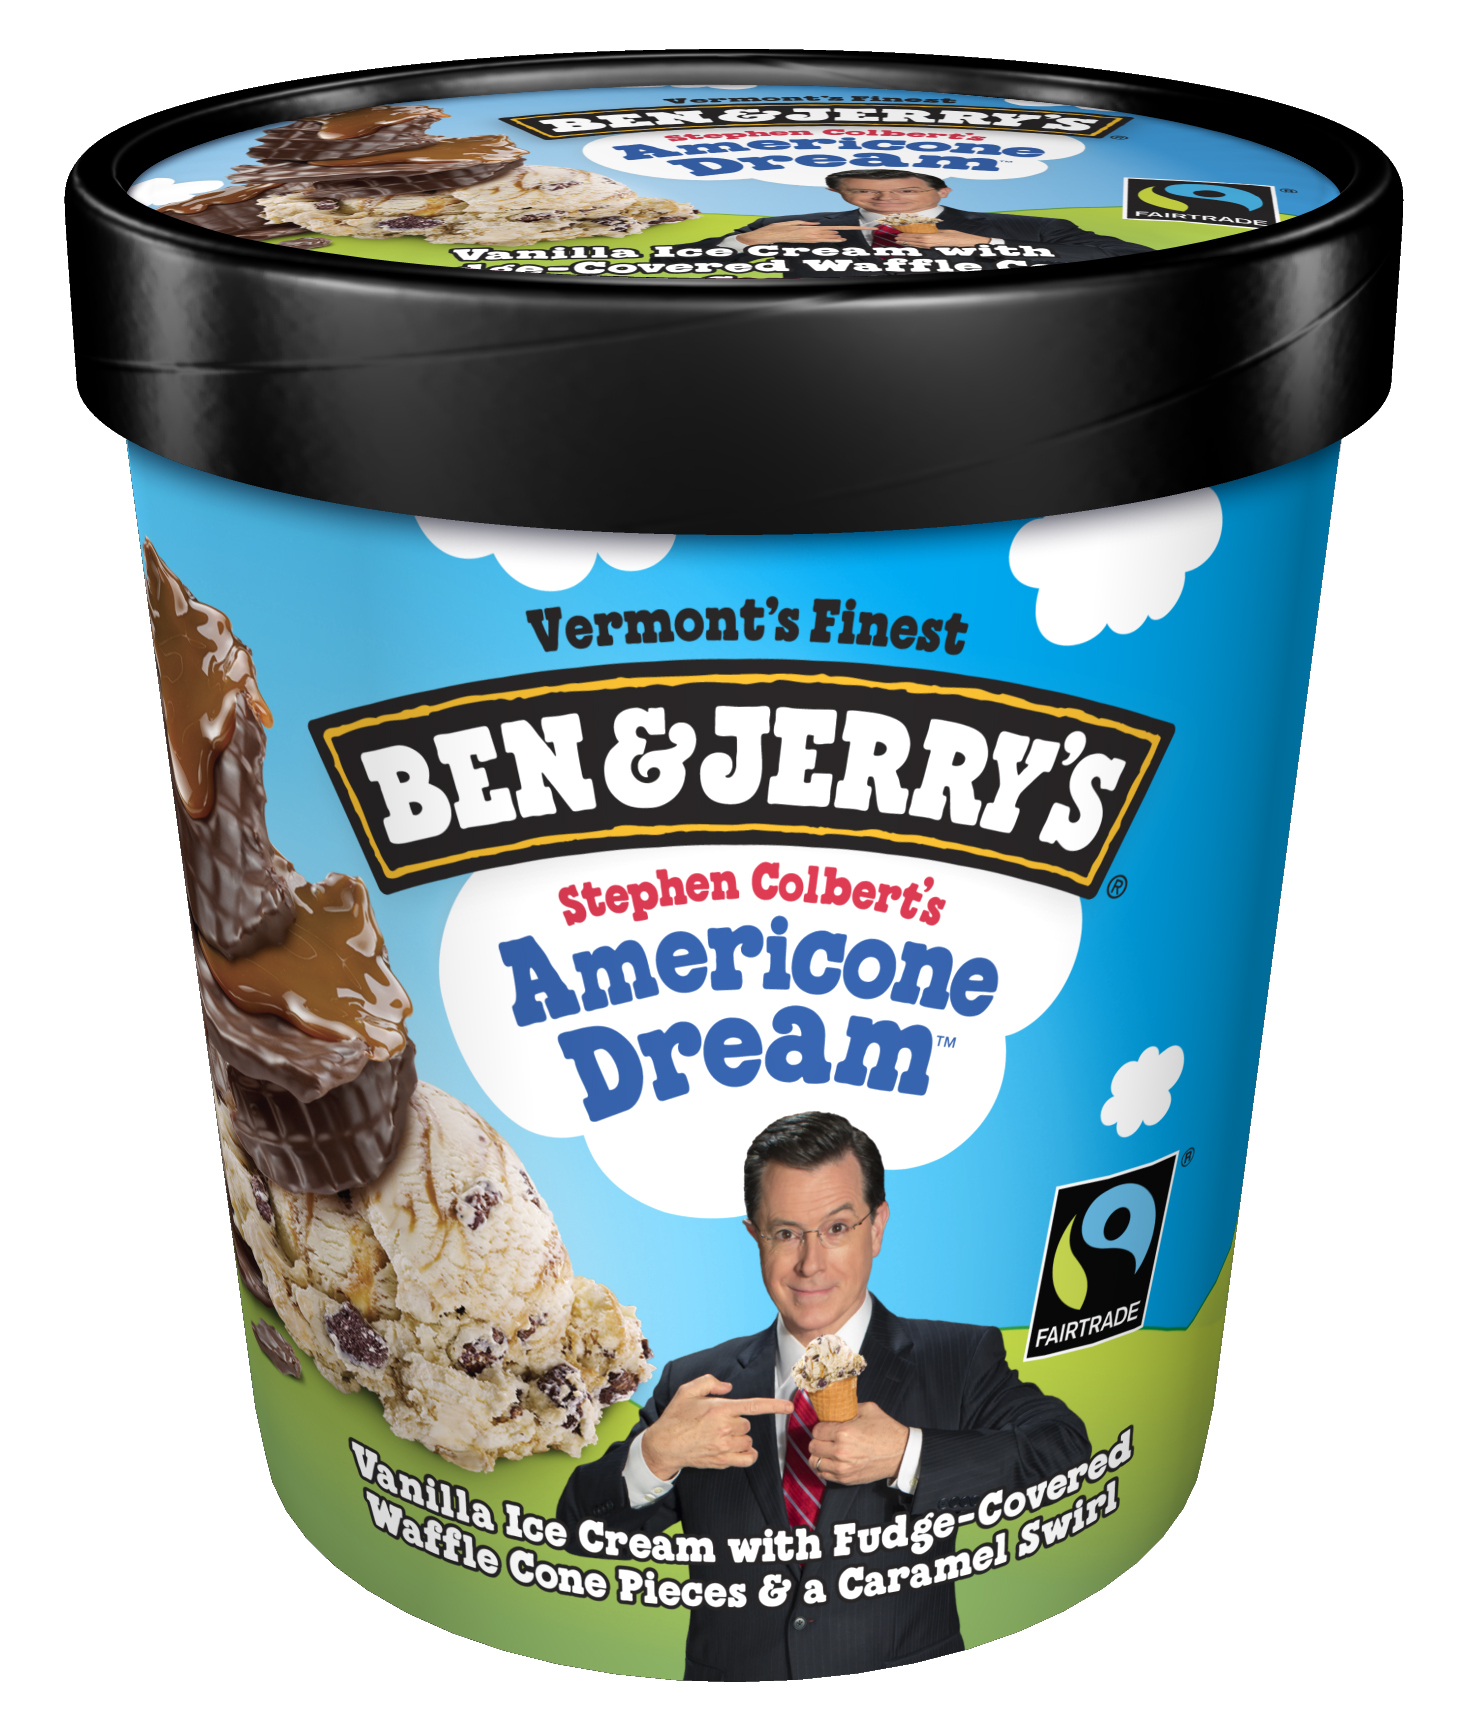 Spend Valentine S Day With Your 3 Favorite Guys Stephen Ben And Jerry Business Wire Ben & jerry's churned up this euphoric creation honoring the late show you see, he donates proceeds from the sale of americone dream to charity. favorite guys stephen ben and jerry